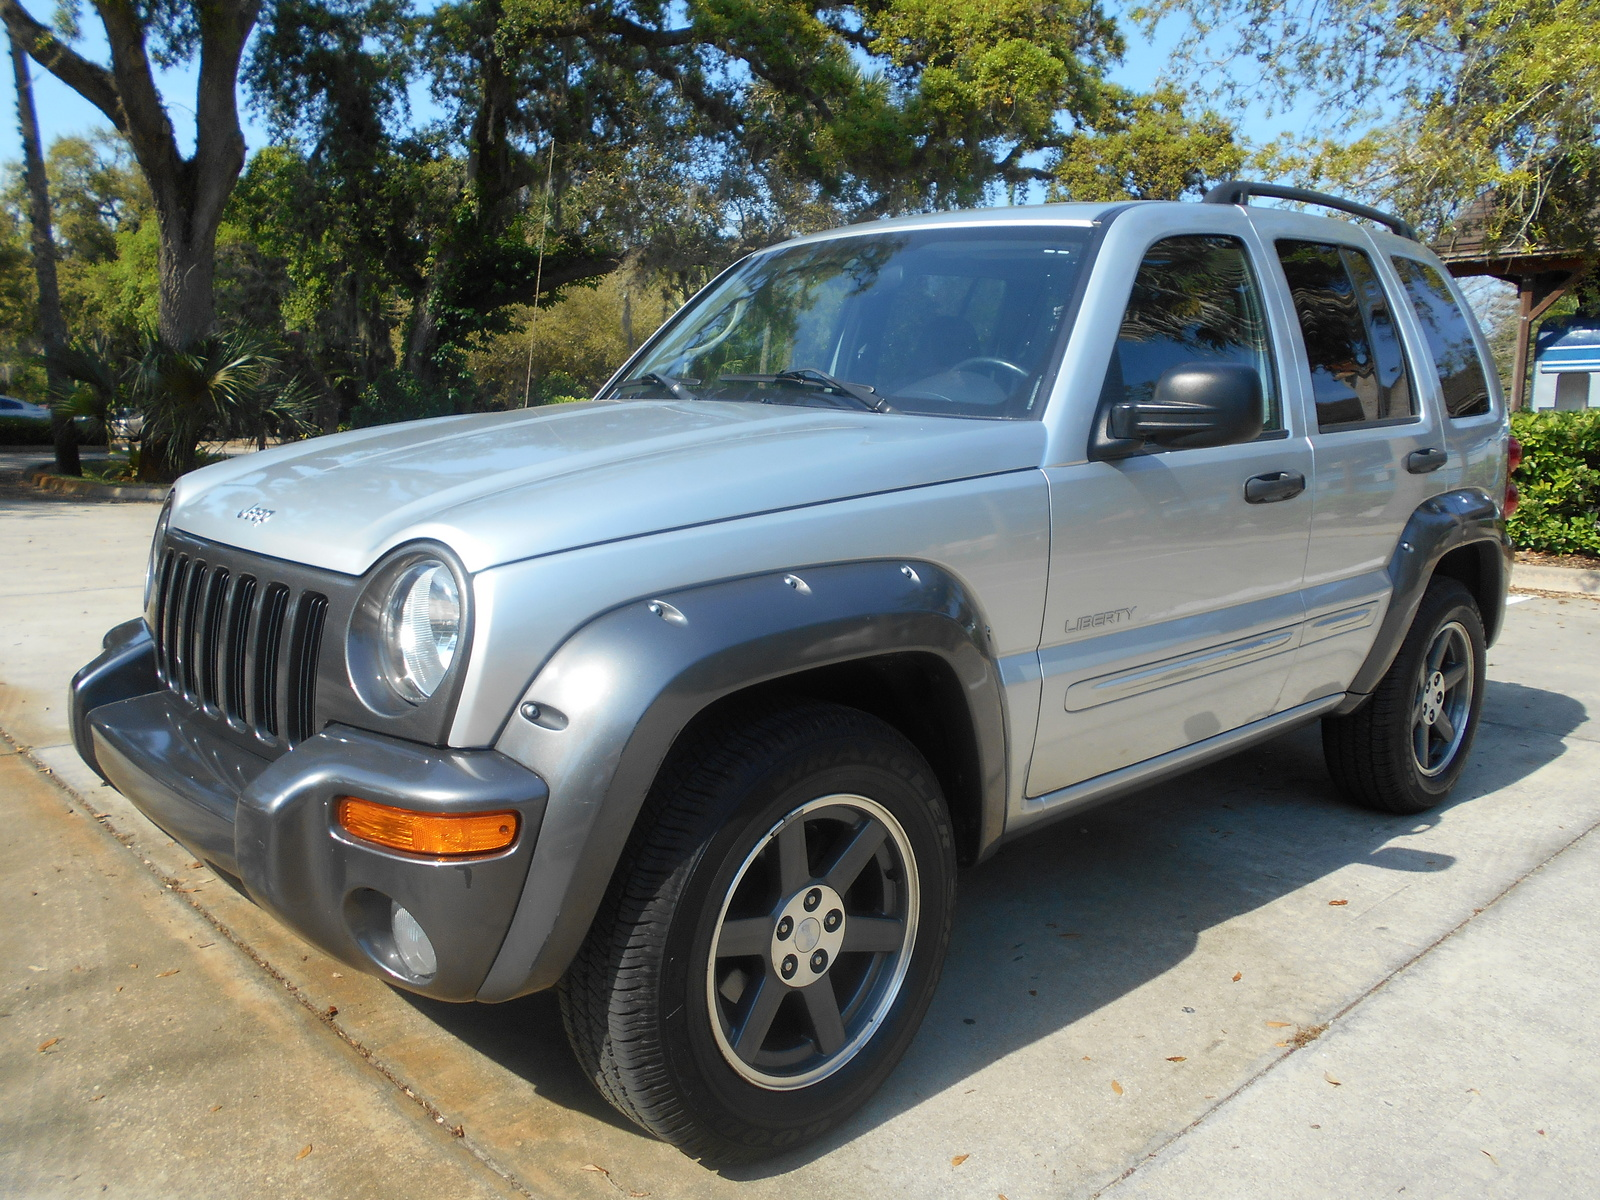 jeep liberty essay Rubric 5th grade topics for division essay classroom observation essay paper pdf file : jeep liberty diesel off road manual page : 1 title:.